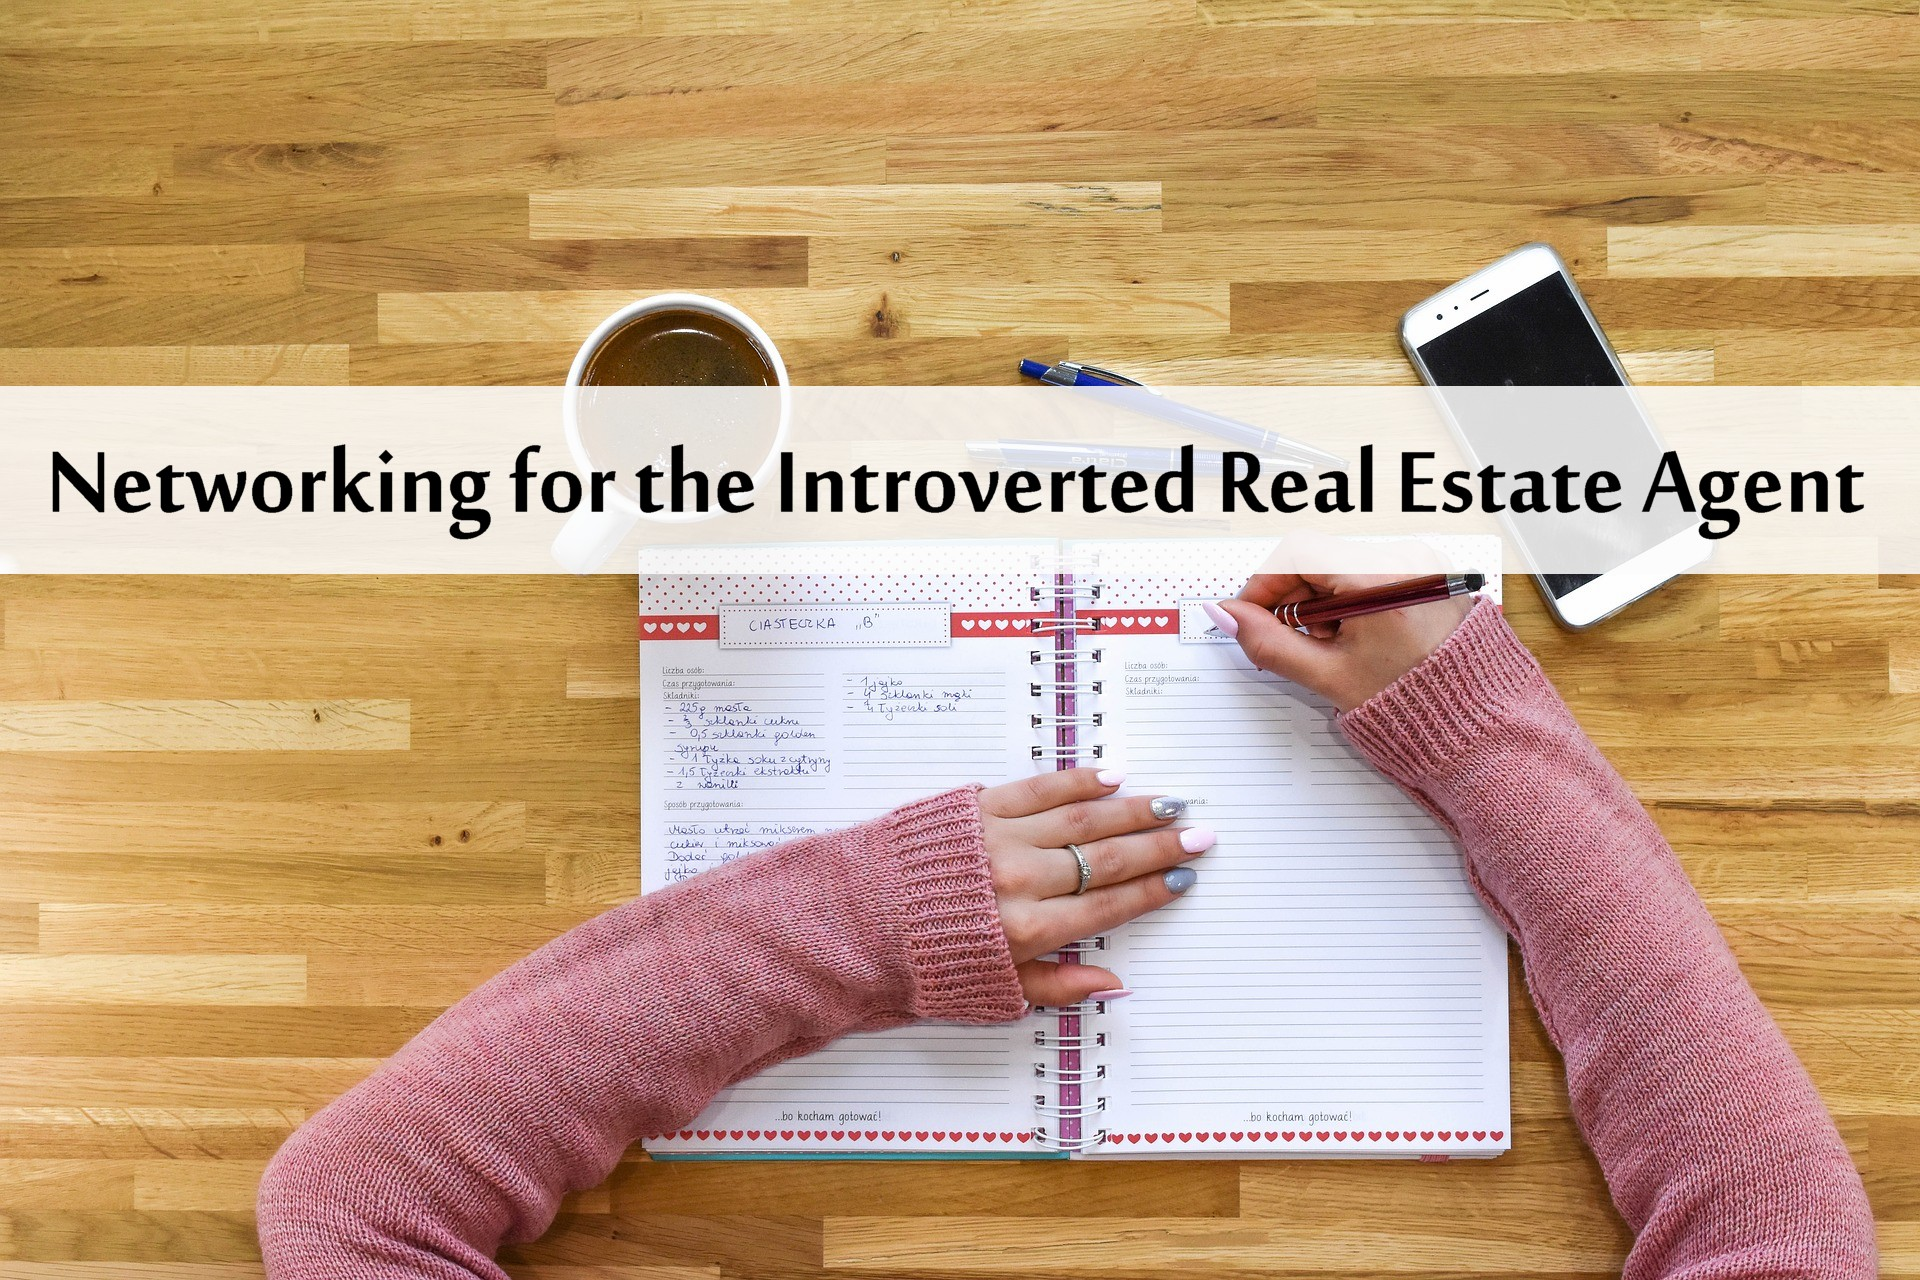 Networking Guide for Introverted Real Estate Agents.jpg